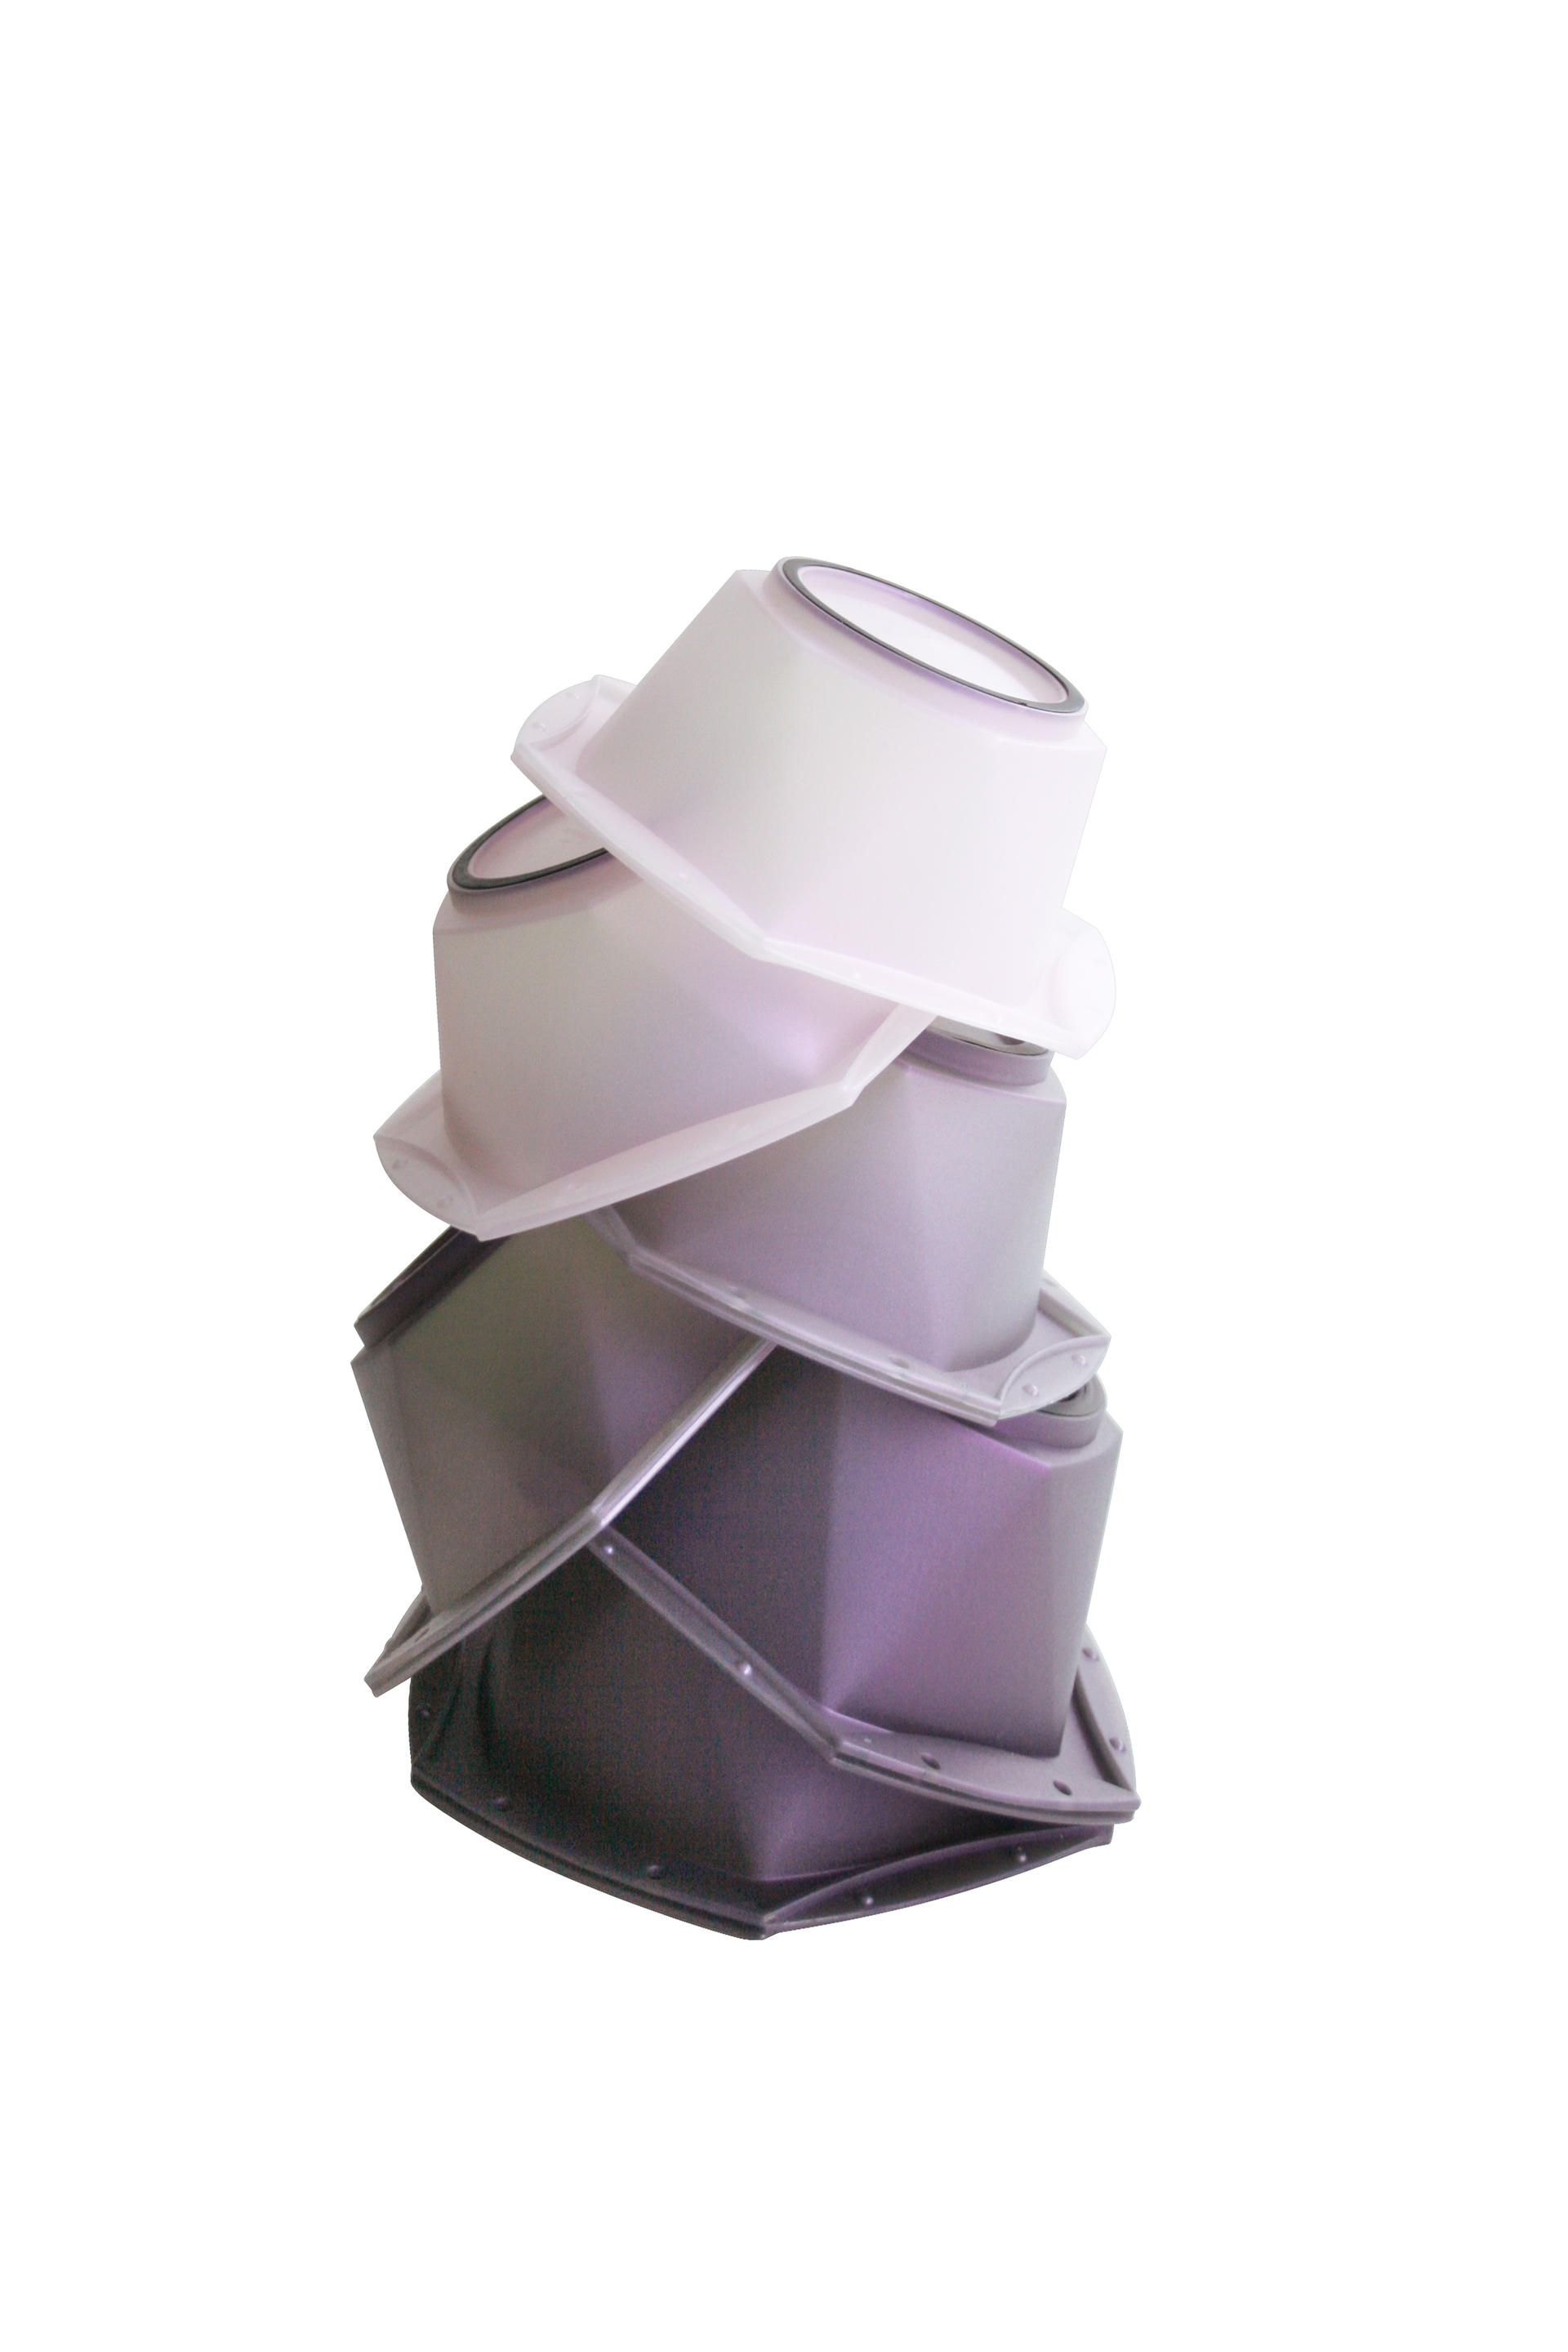 Barber Hair Color Dyeing Mixing Tint Bowls For Beauty Salon